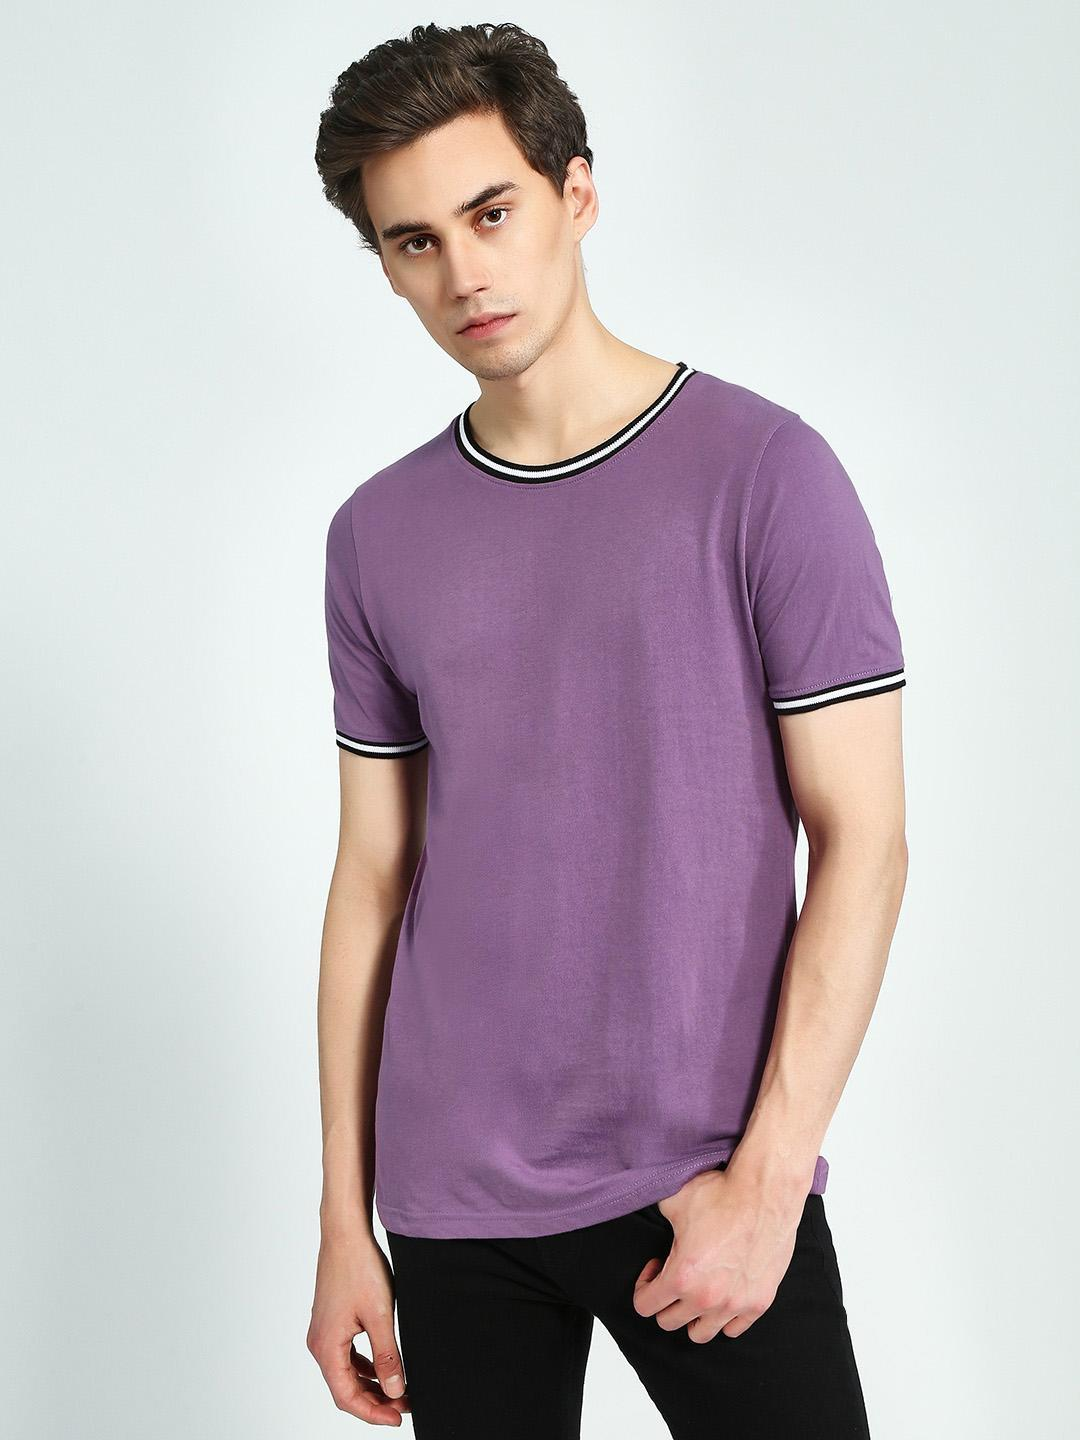 Blue Saint Purple Crew Neck Ringer T-Shirt 1